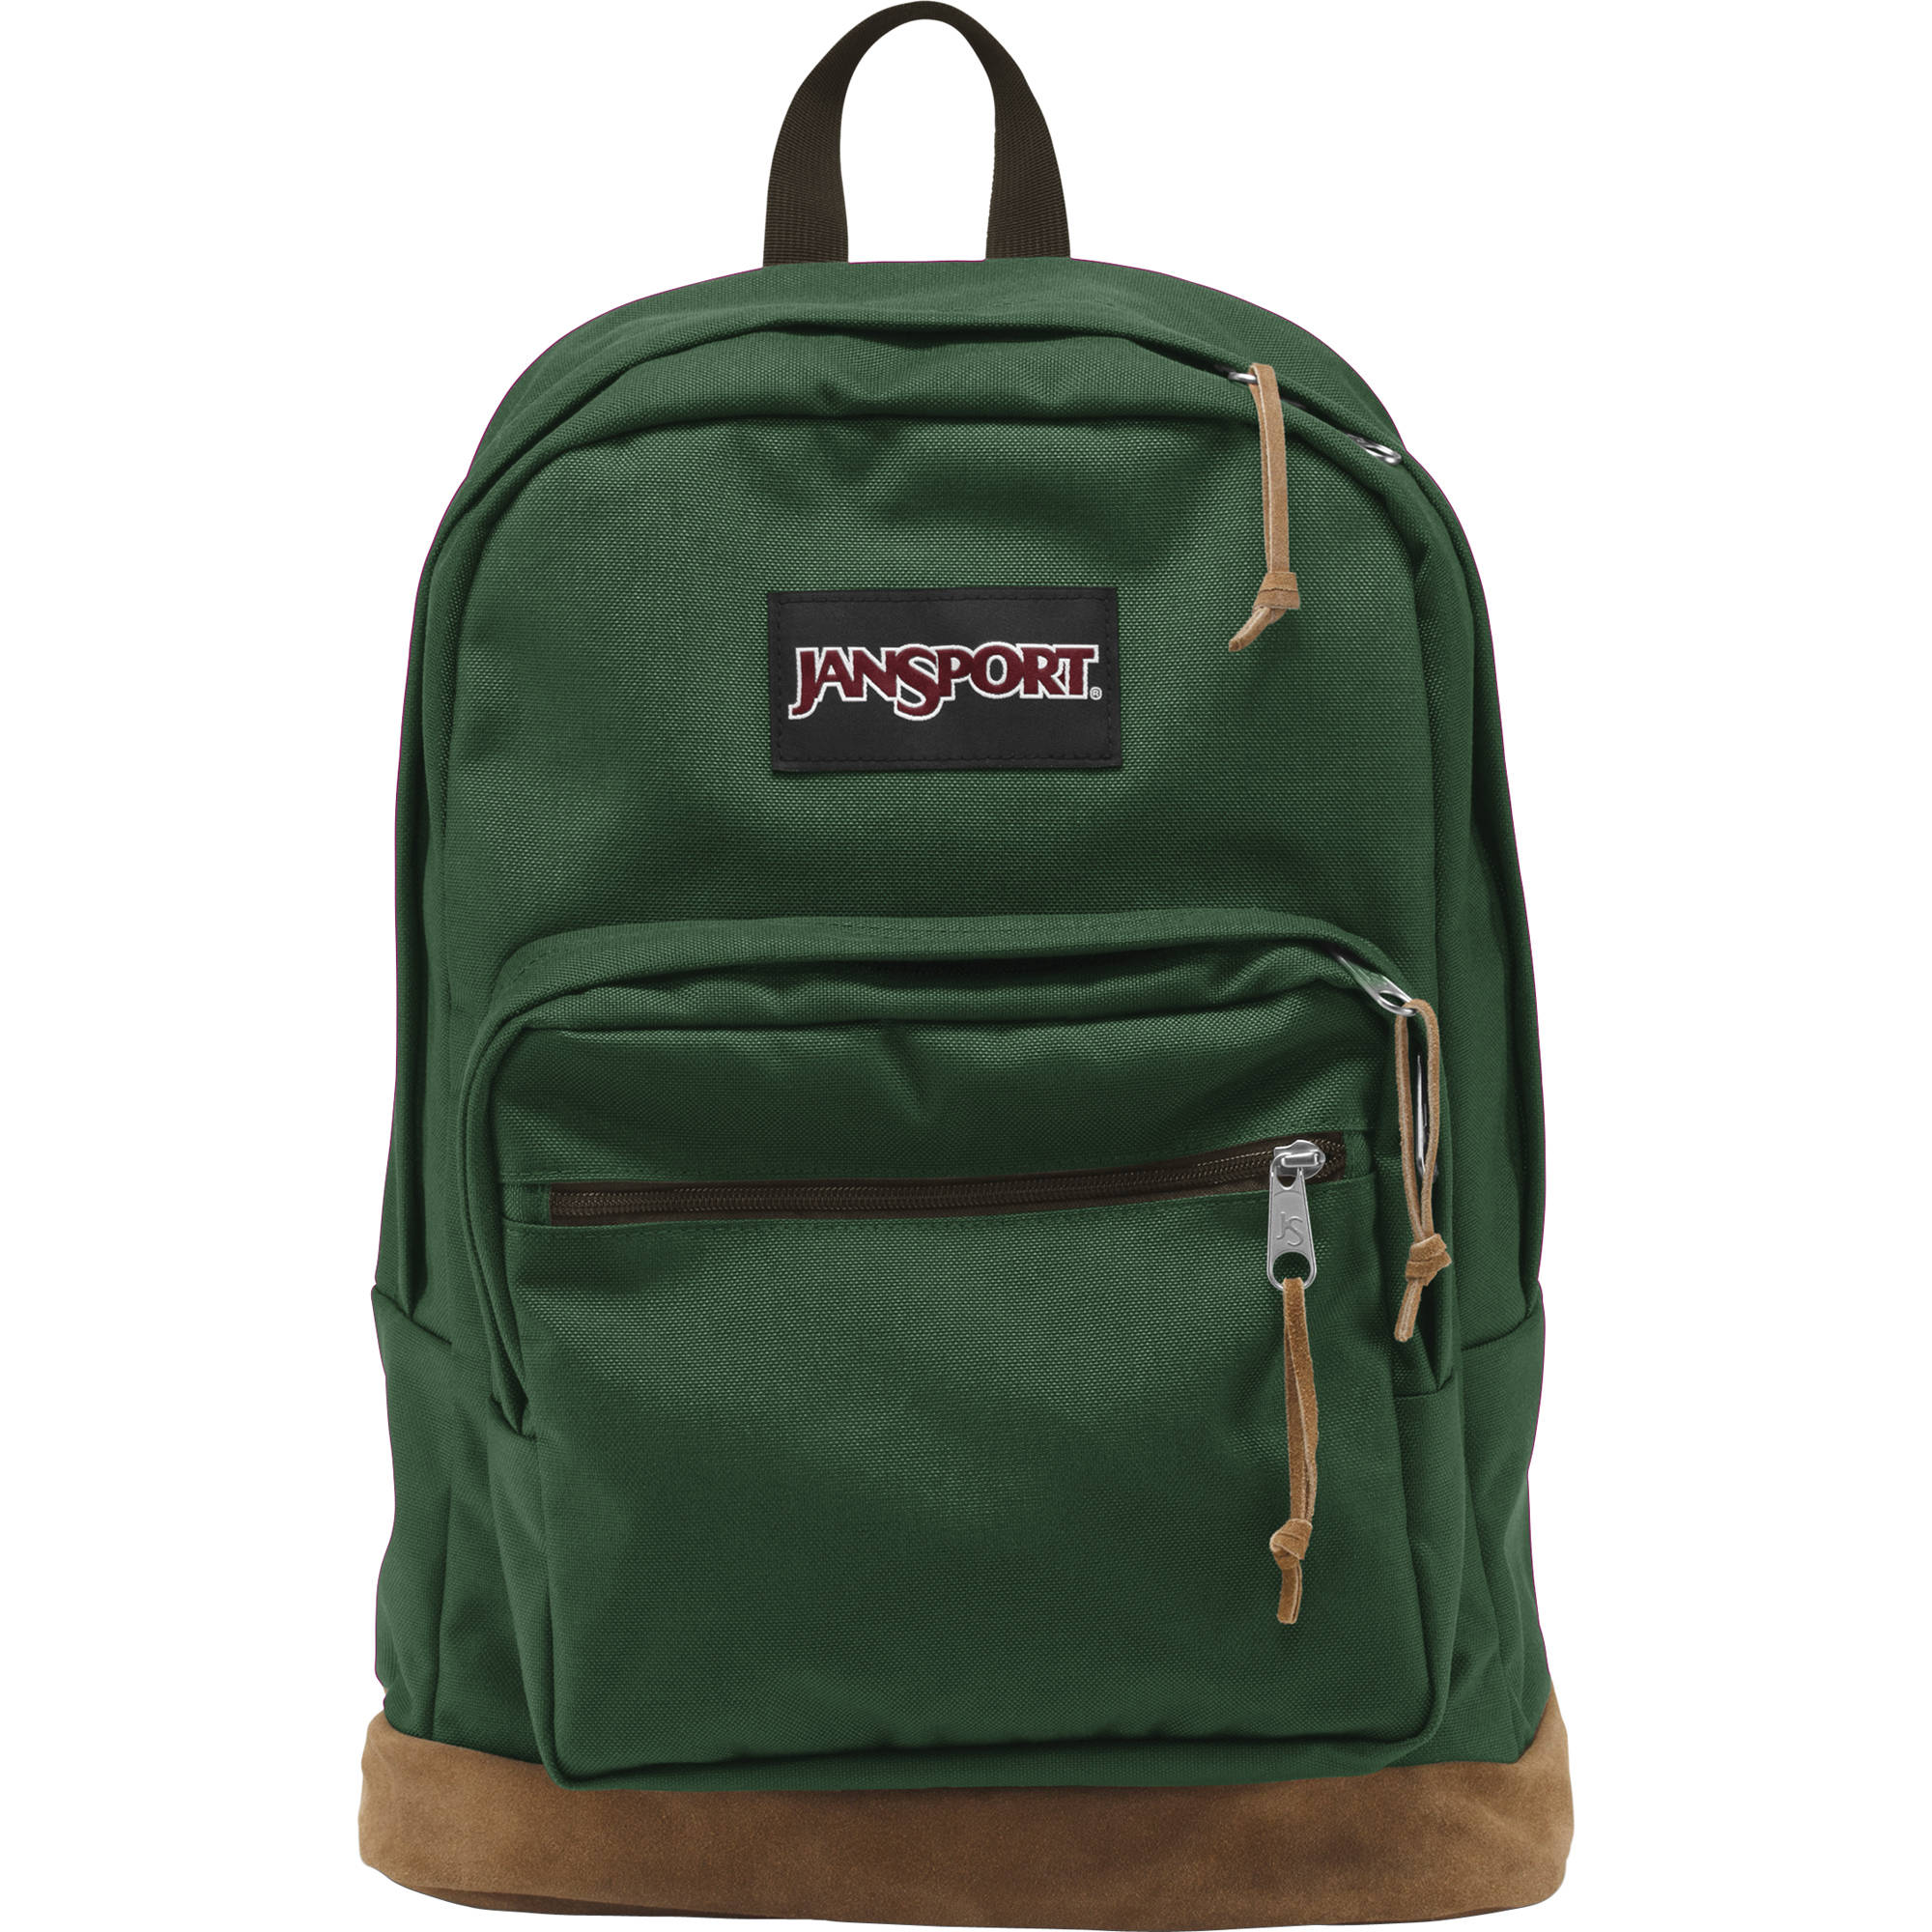 Jansport Green Backpack 44CpROdc